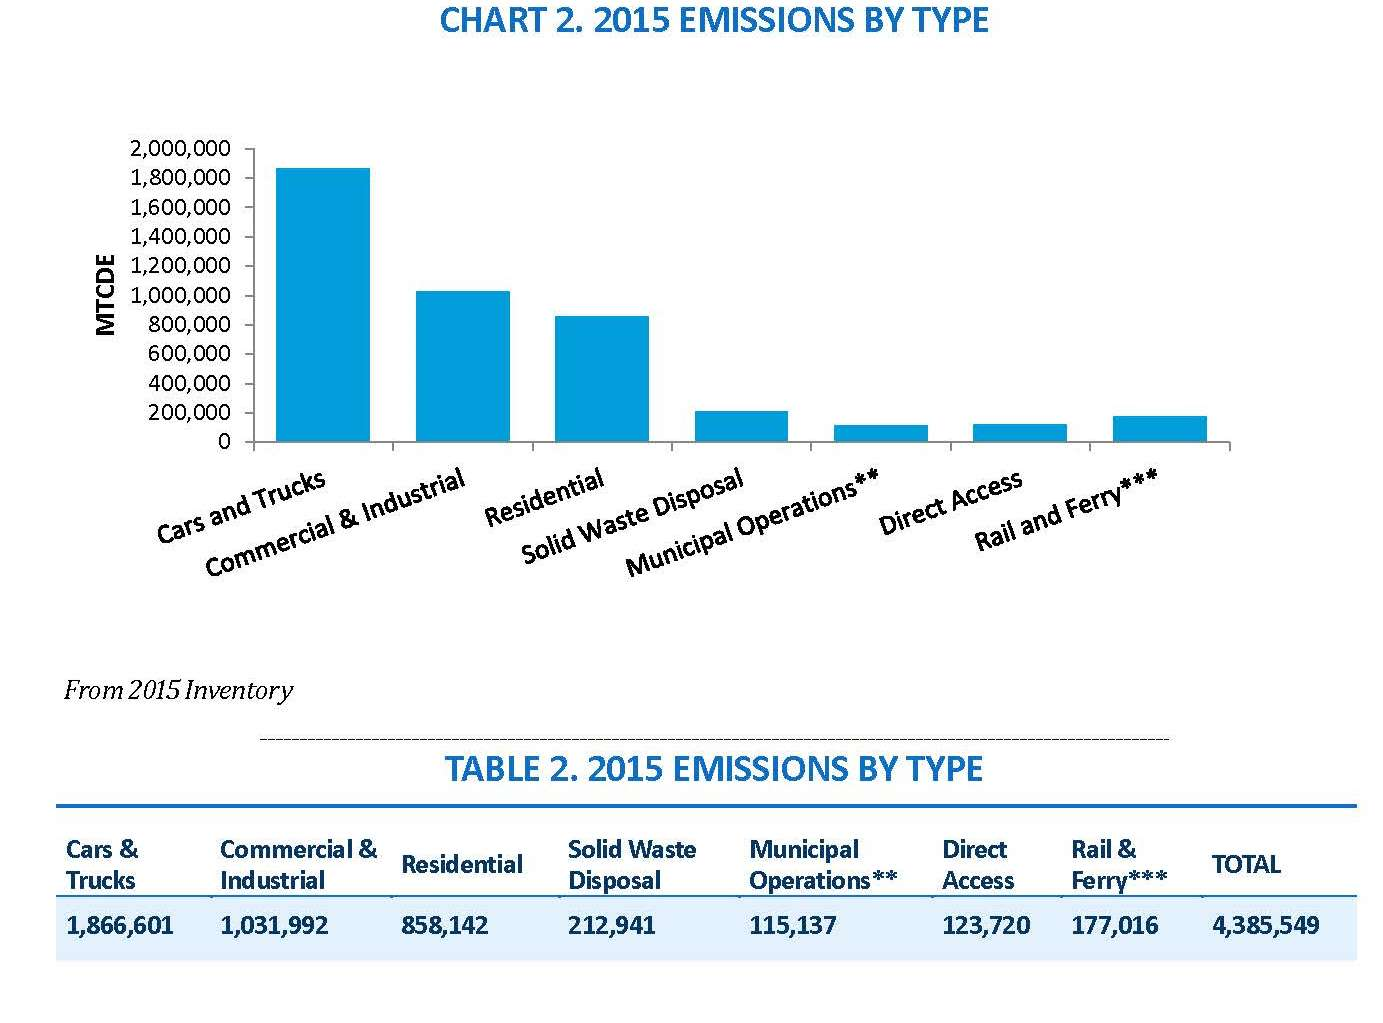 2015 Emissions Chart 2 by Type